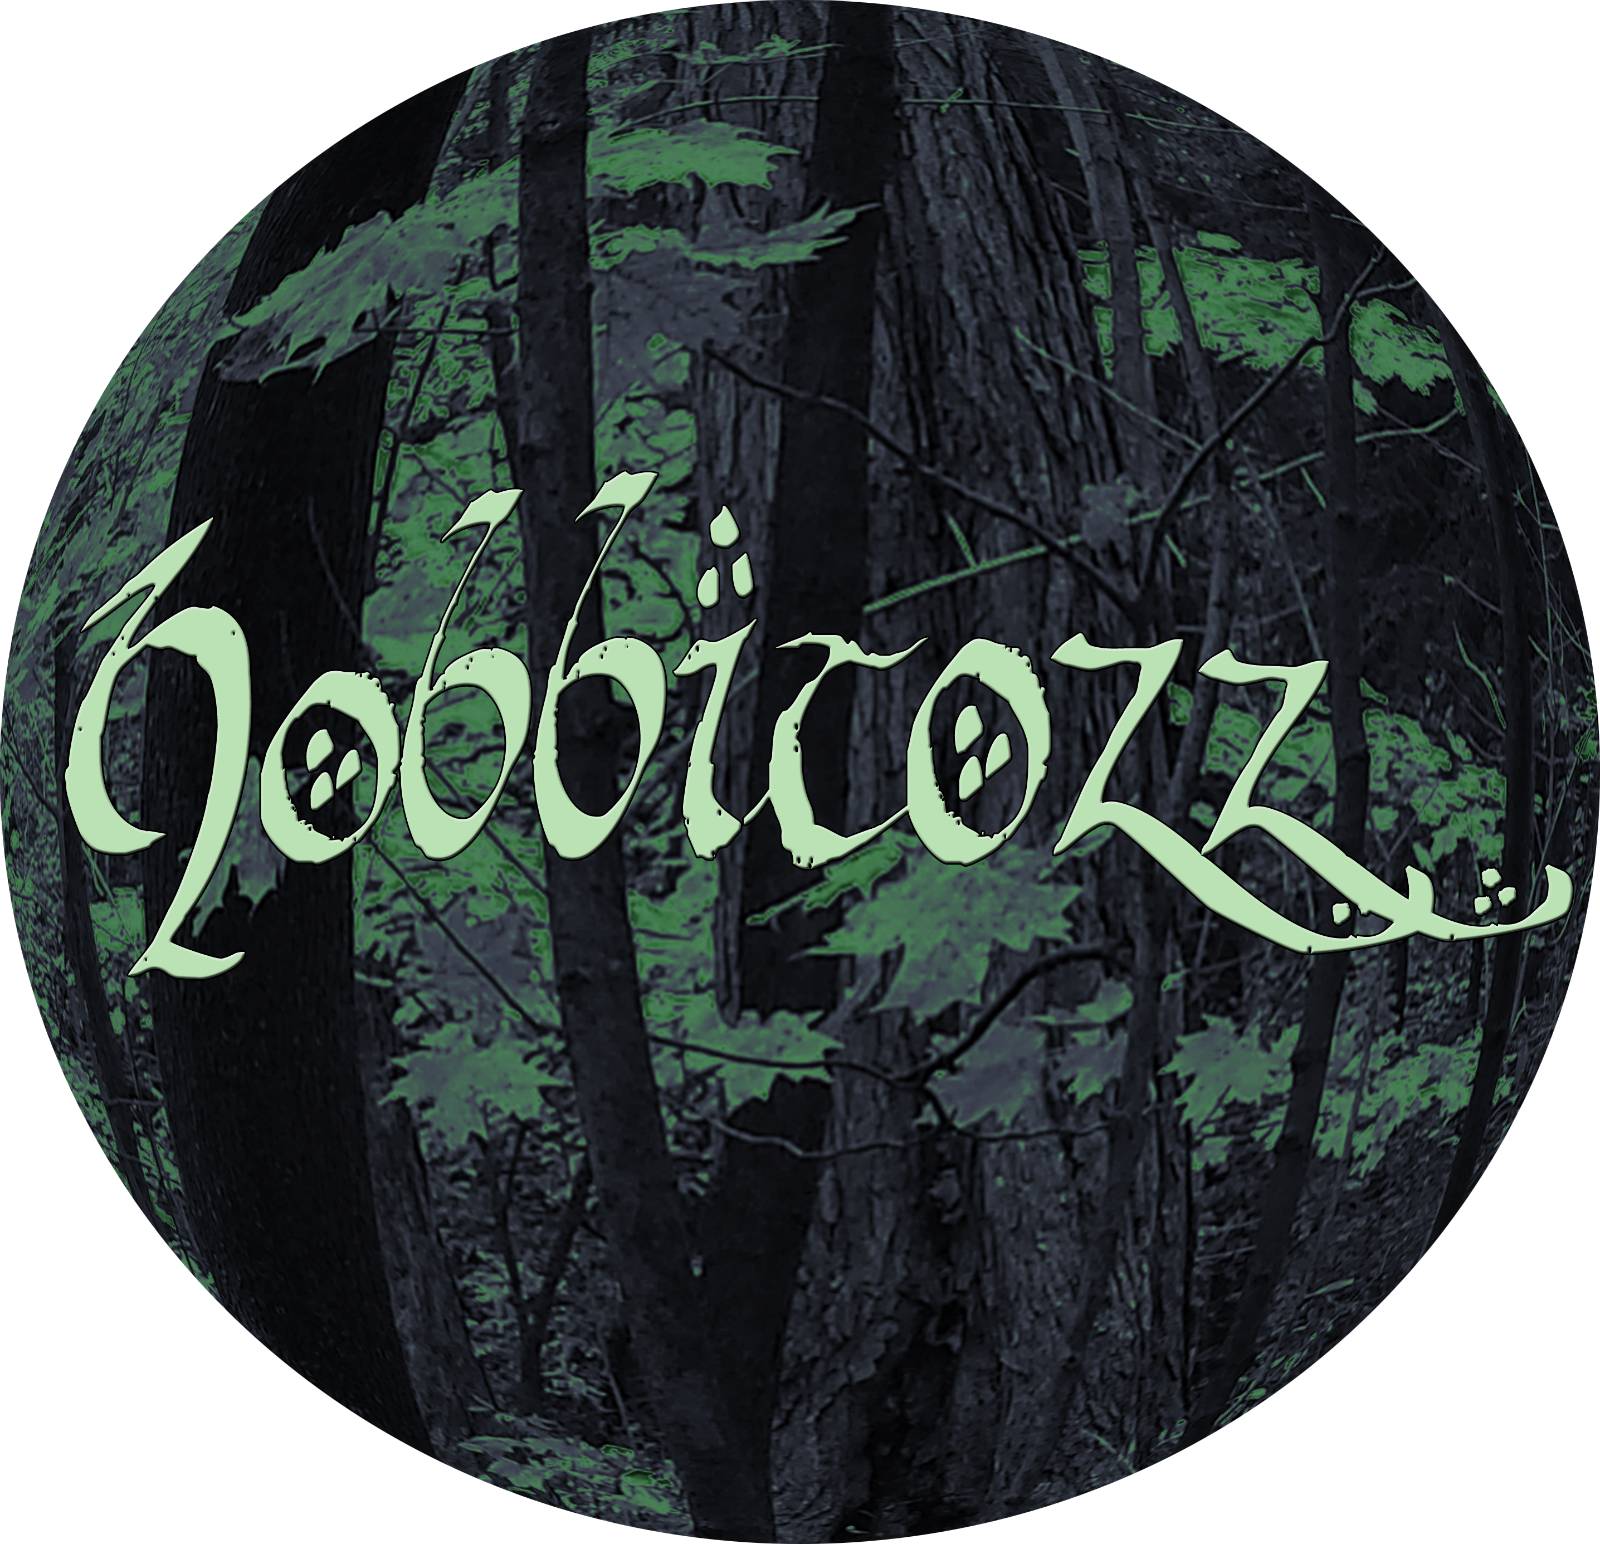 the planet of Hobbitozz